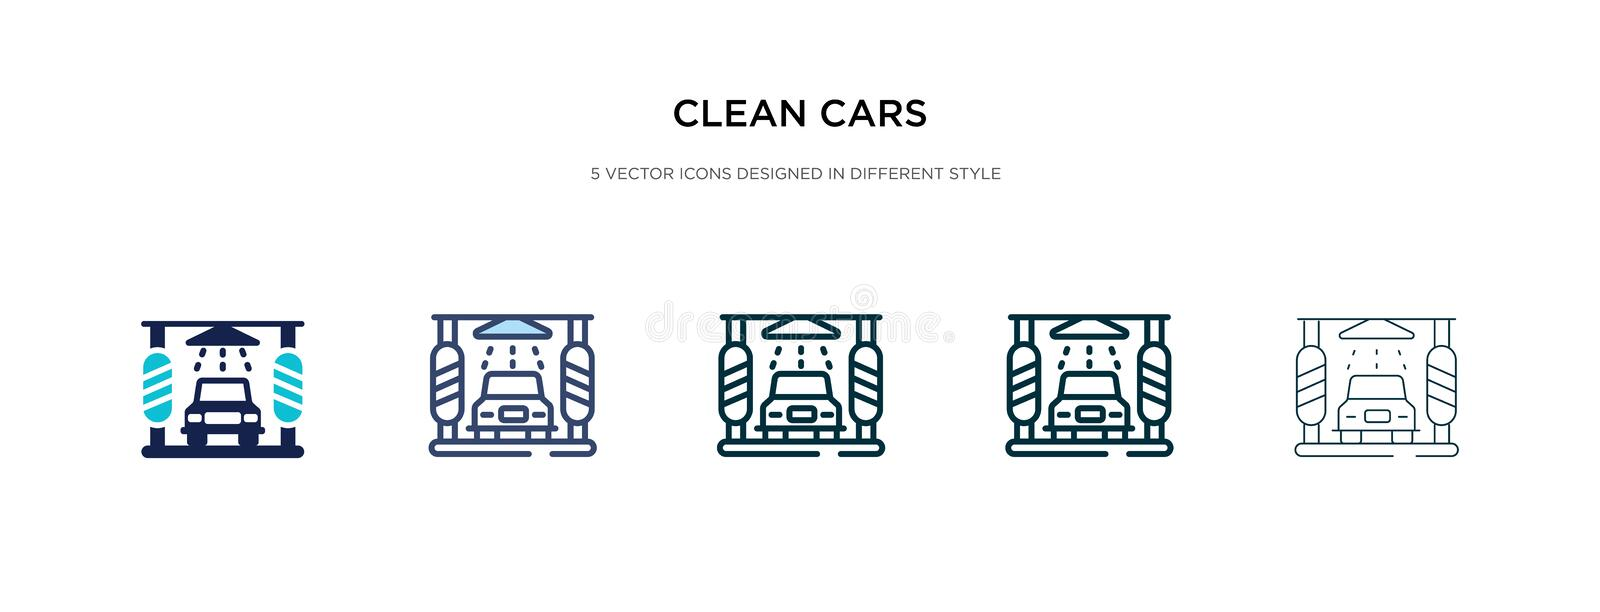 Clean cars icon in different style vector illustration. two colored and black clean cars vector icons designed in filled, outline stock illustration